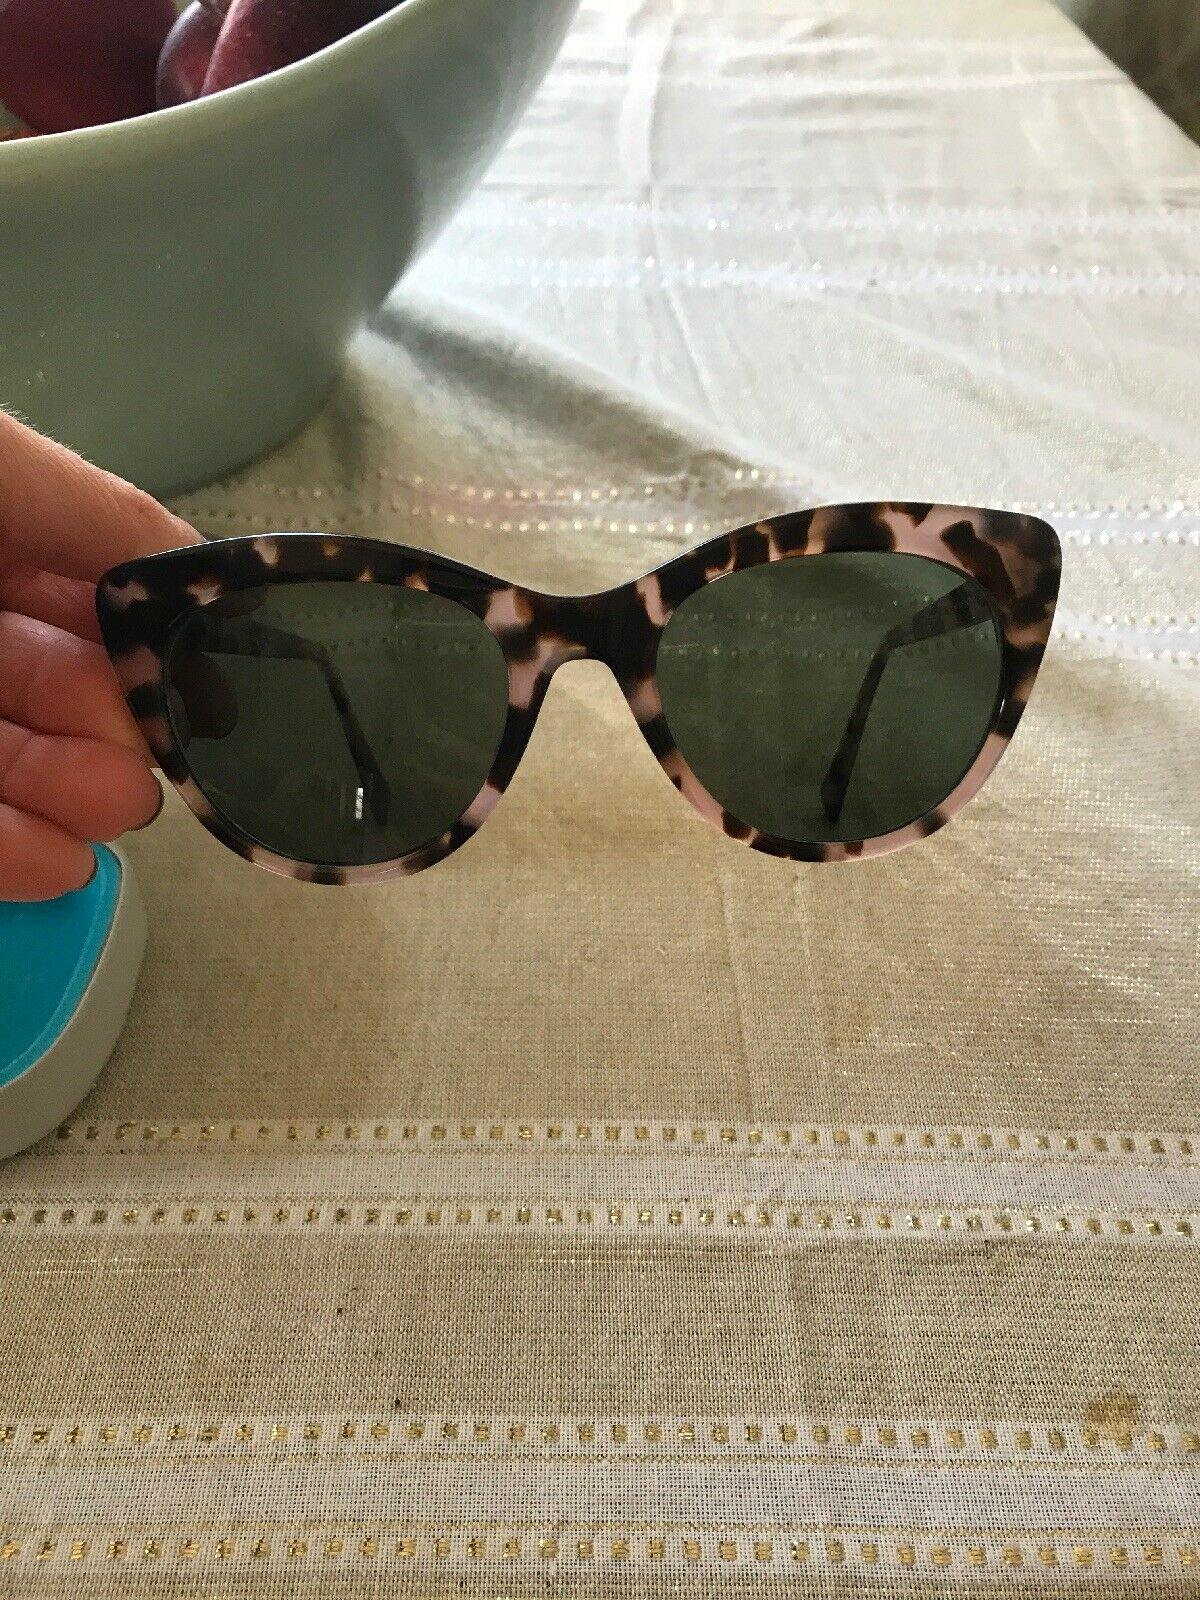 warby parker sunglasses - image 5